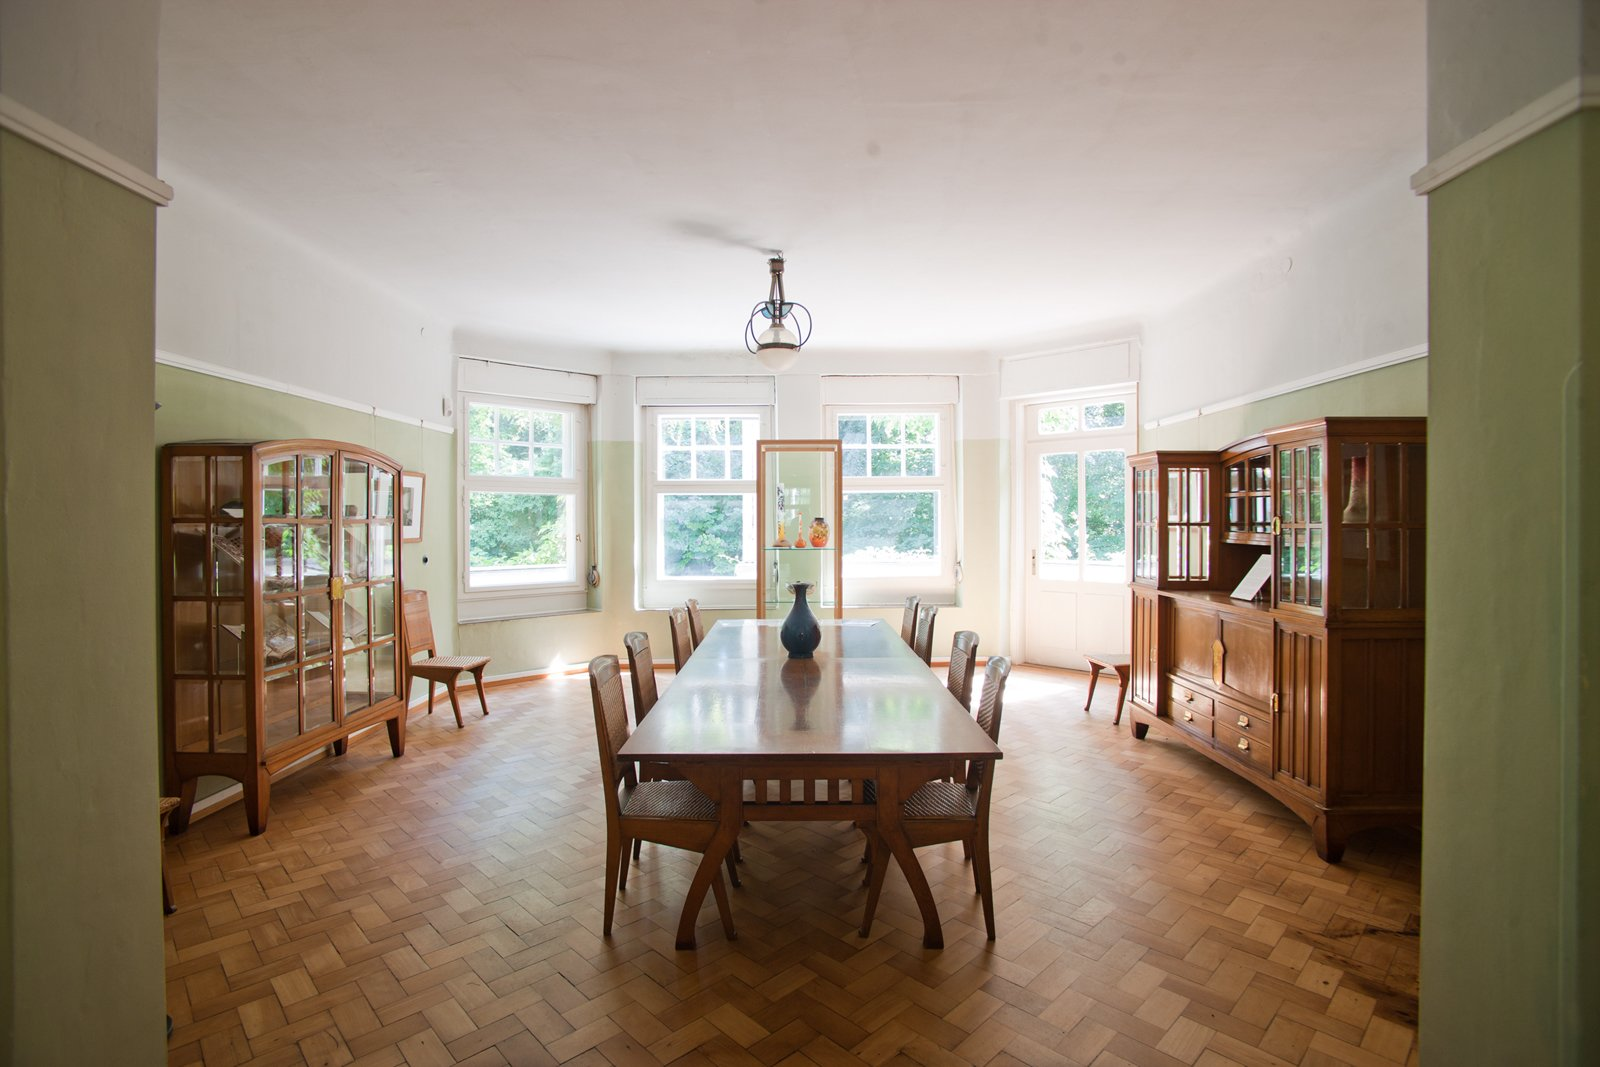 Hendy van de Velde's house, Hohe Papplin Haus in Weimar. Note the bowed out large windows, very Art Nouveau in design, that let in an abundance of natural light. Van de Velde designed the furnishings to match the shape of the room.  Photo 4 of 4 in Art Nouveau Architect Henry van de Velde